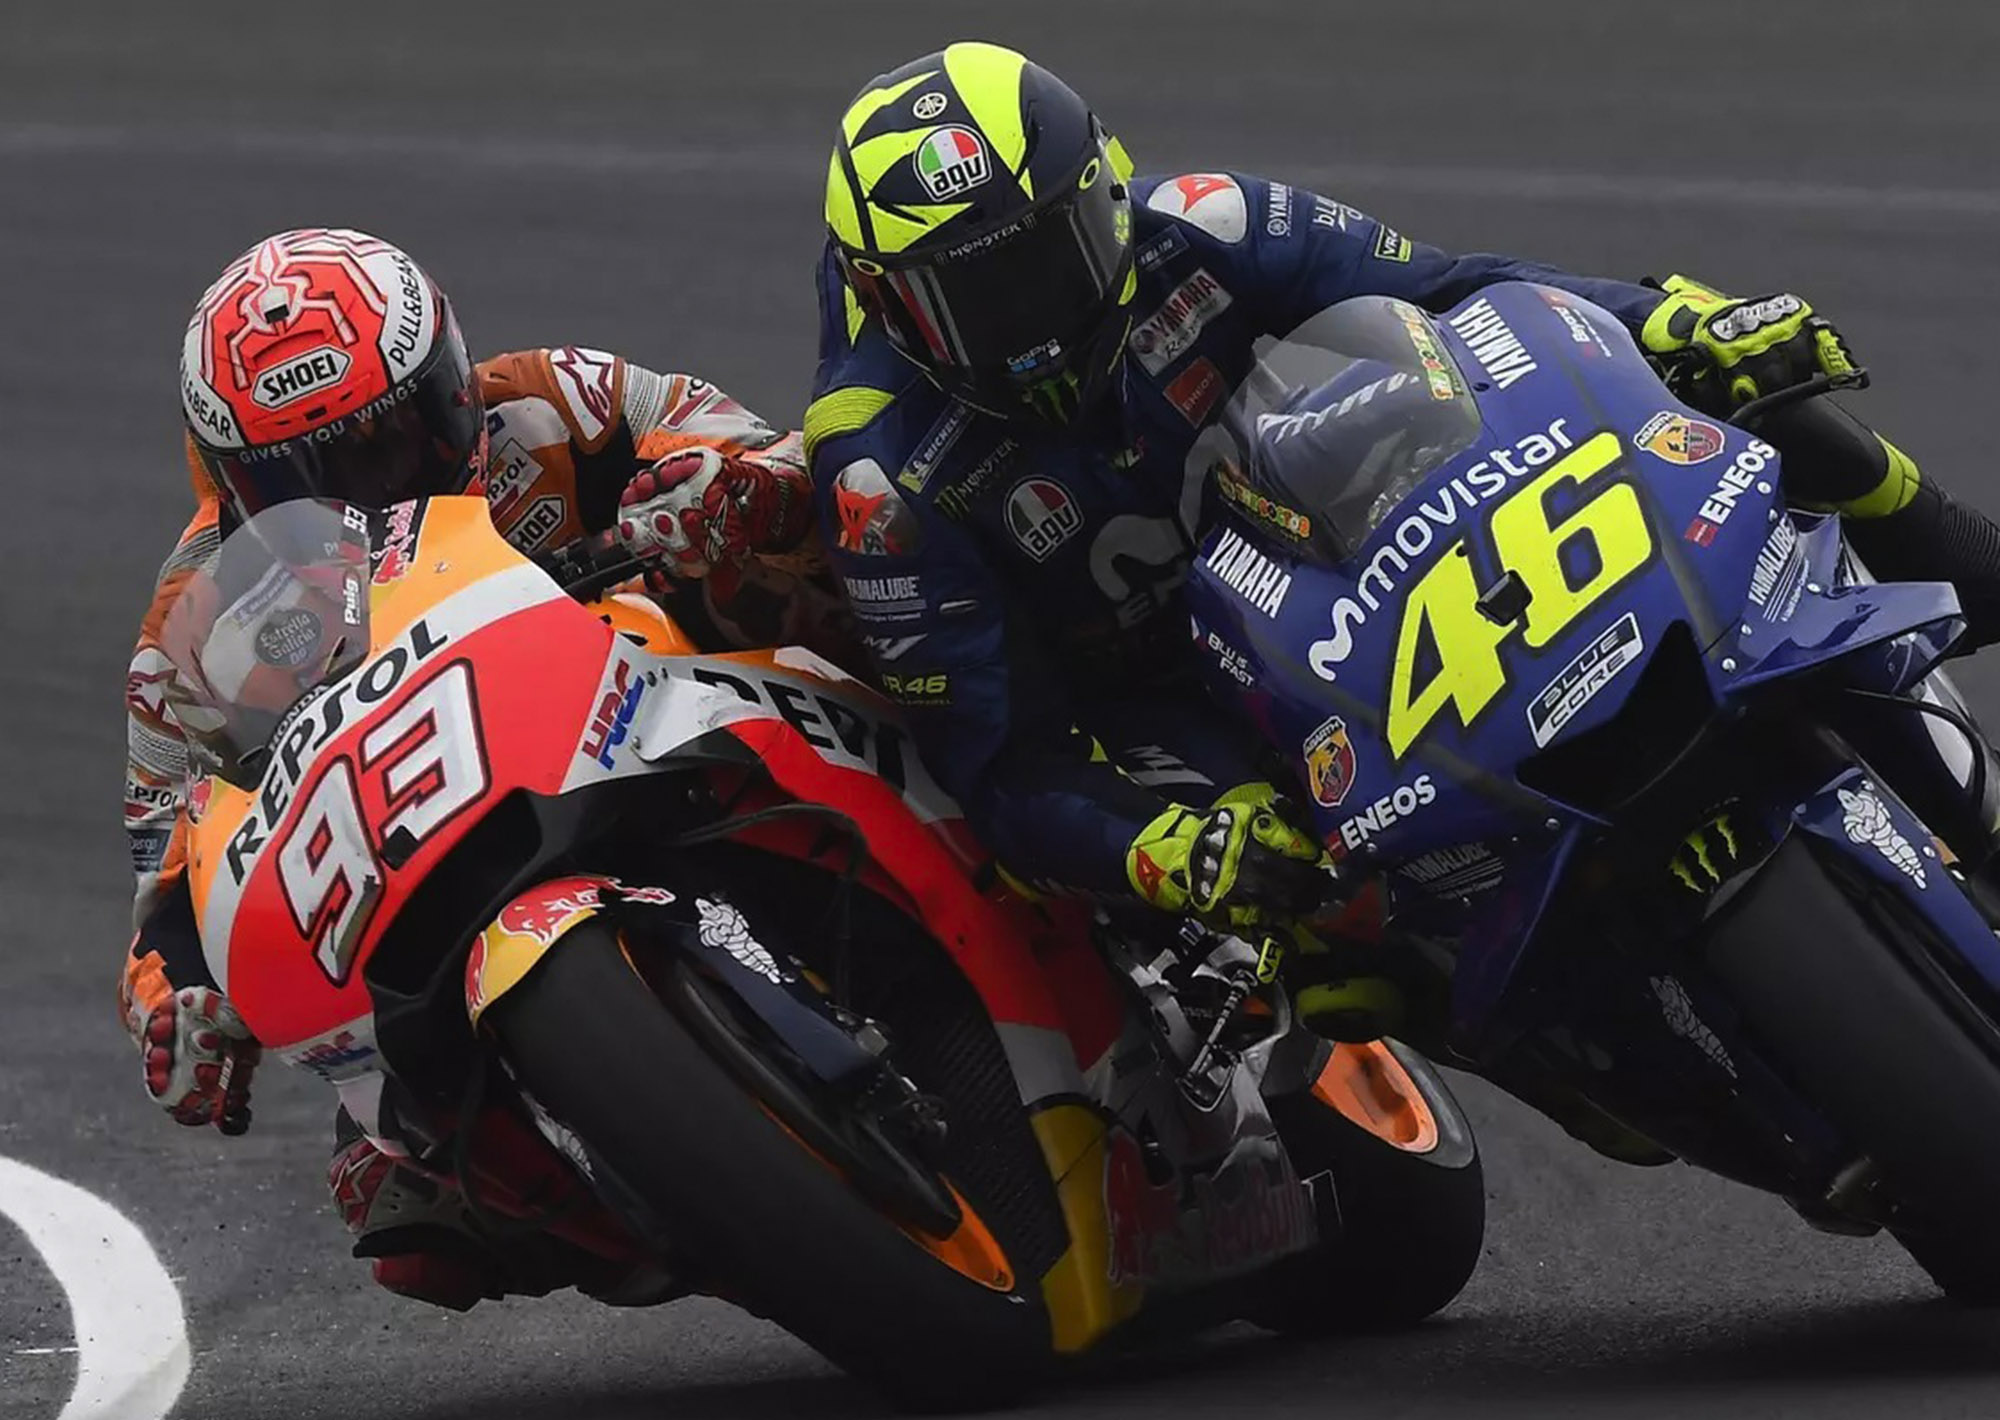 Valentino Rossi and Marc Marquez race (thedrive.com)